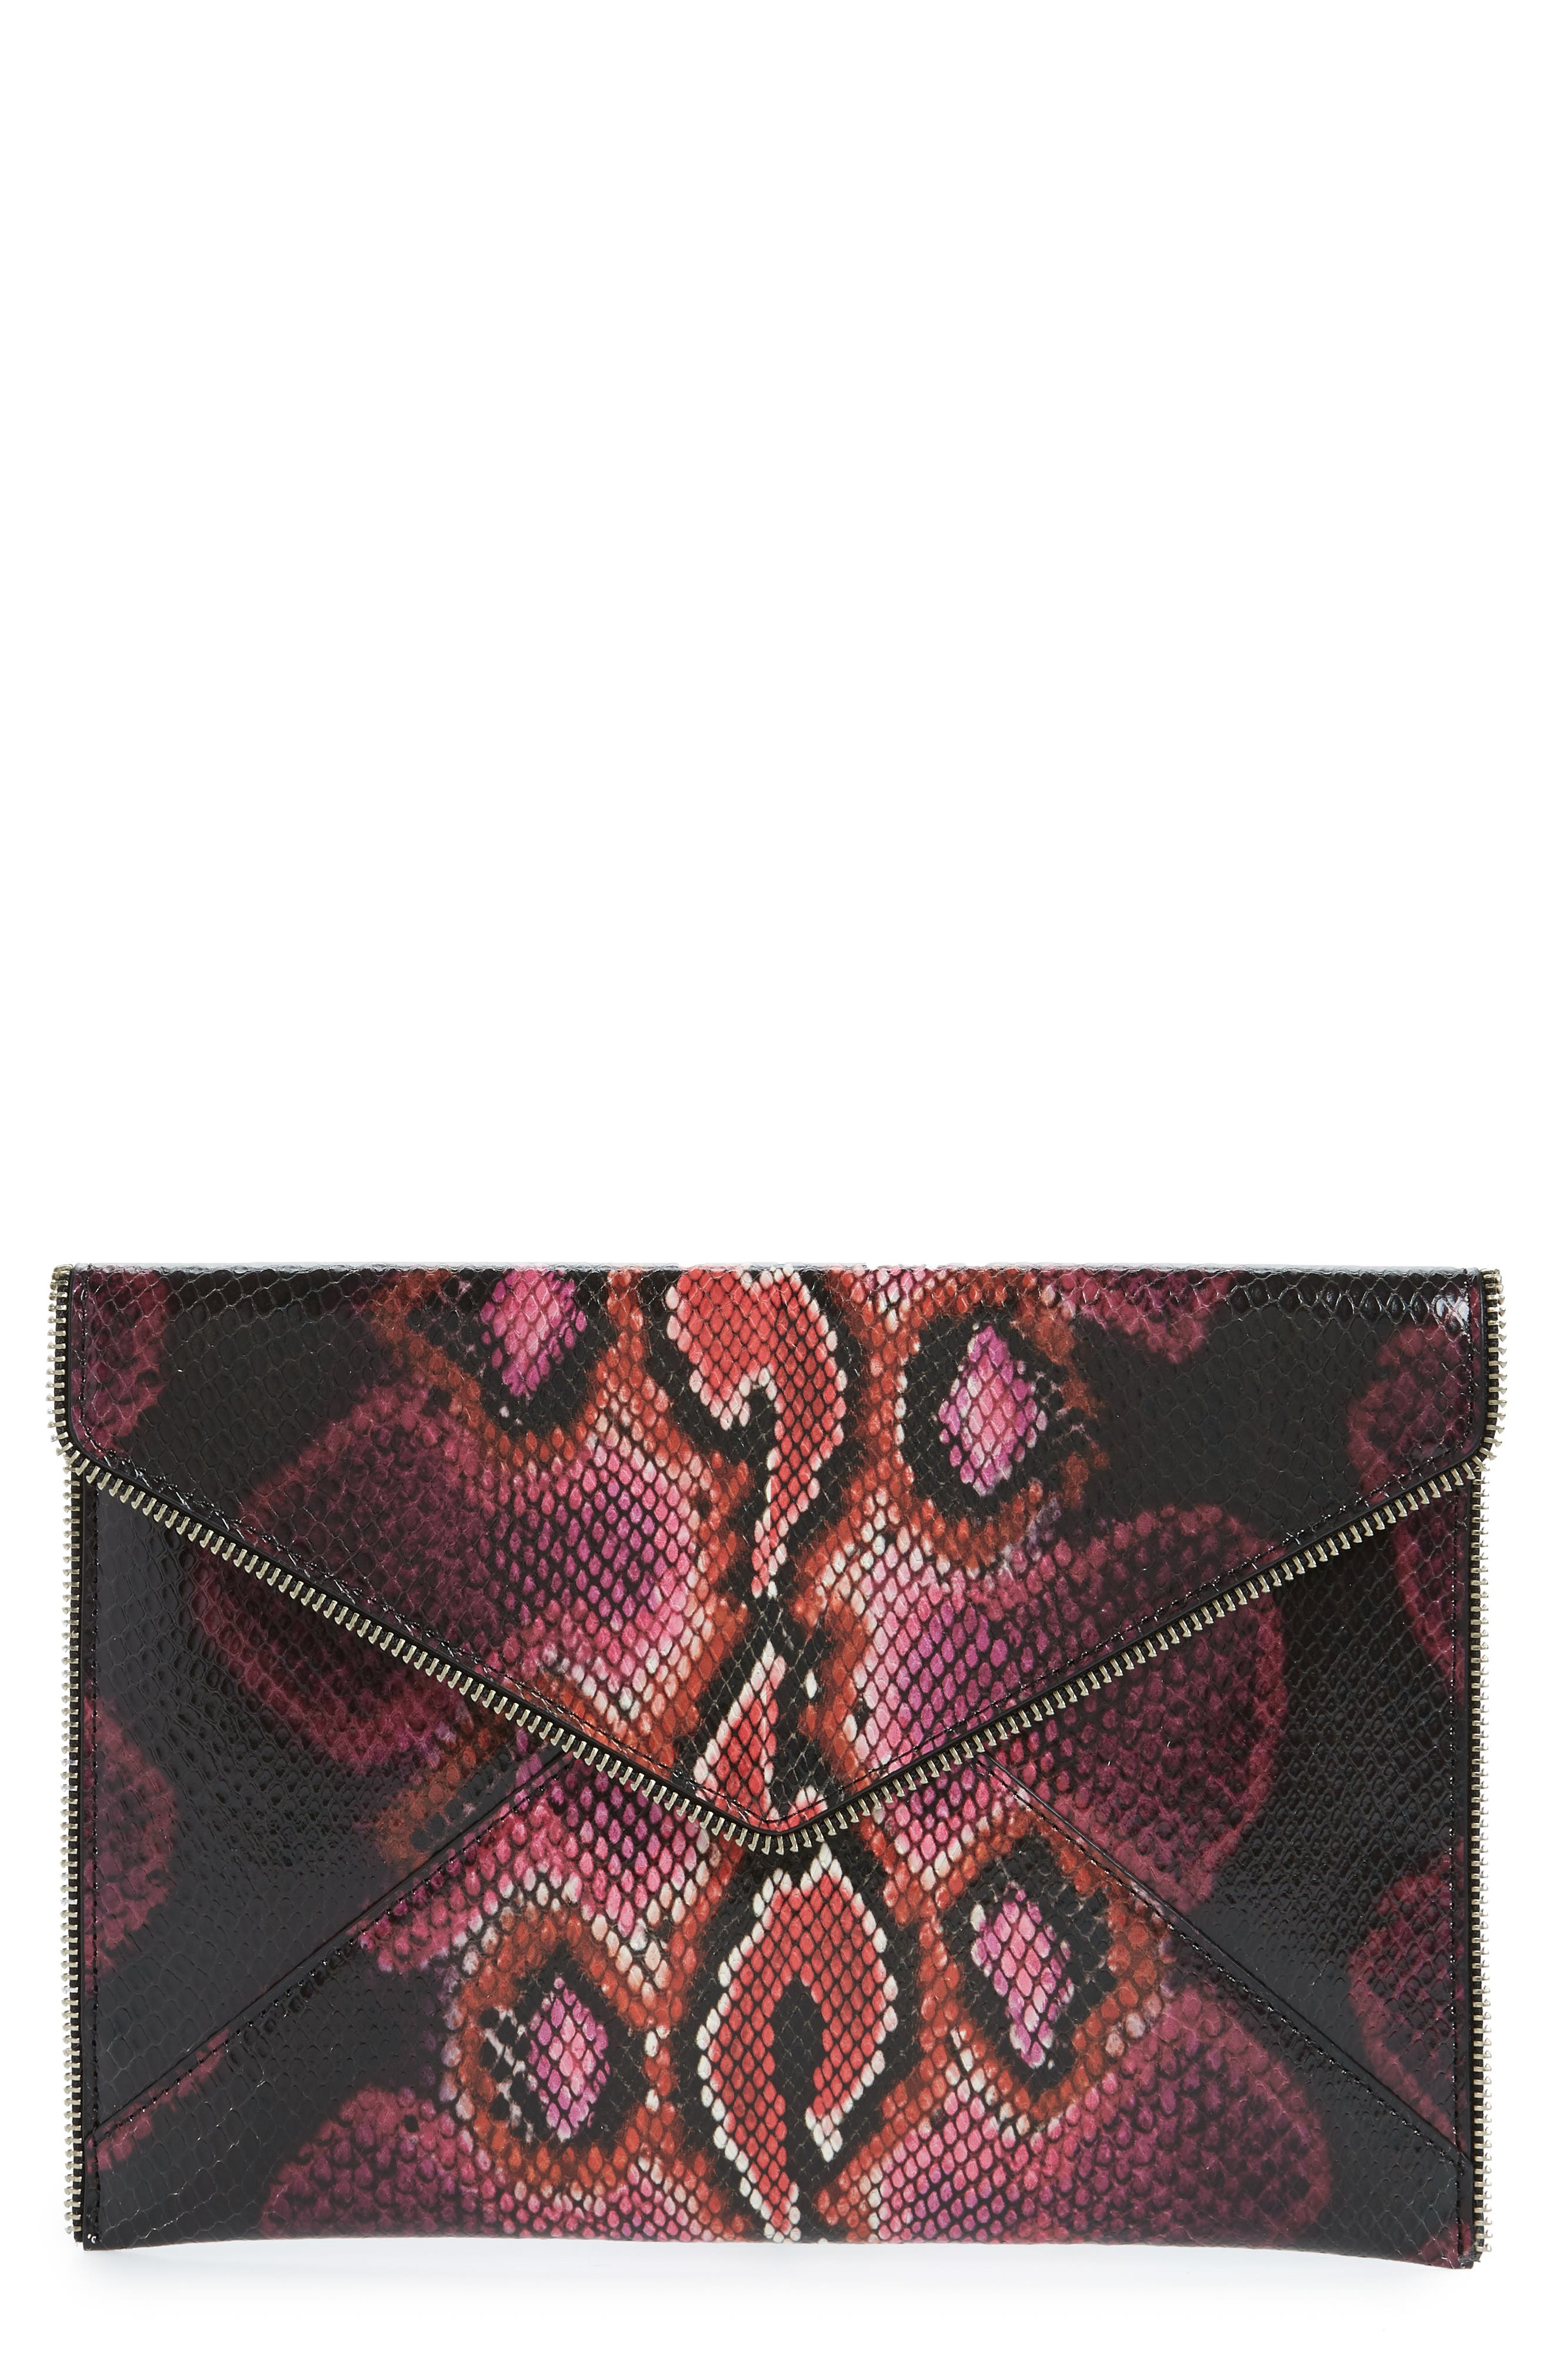 REBECCA MINKOFF,                             Leo Snake Embossed Leather Clutch,                             Main thumbnail 1, color,                             PINK MULTI